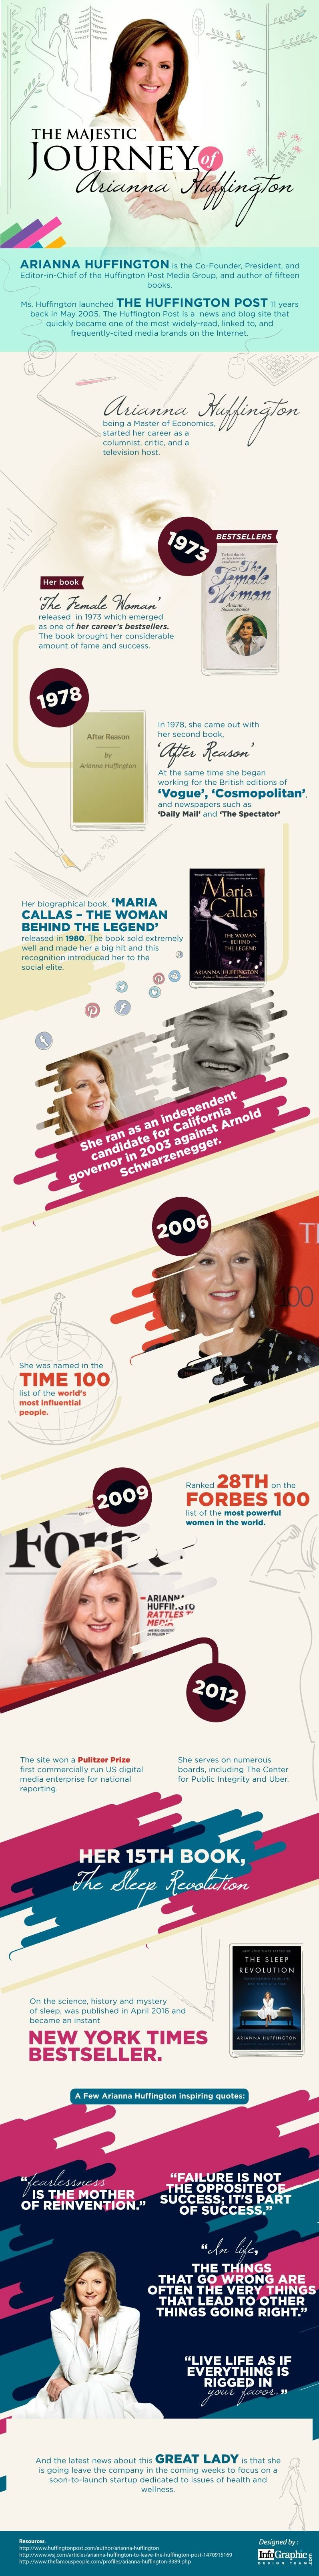 The Majestic Journey Of Arianna Huffington #Infographic